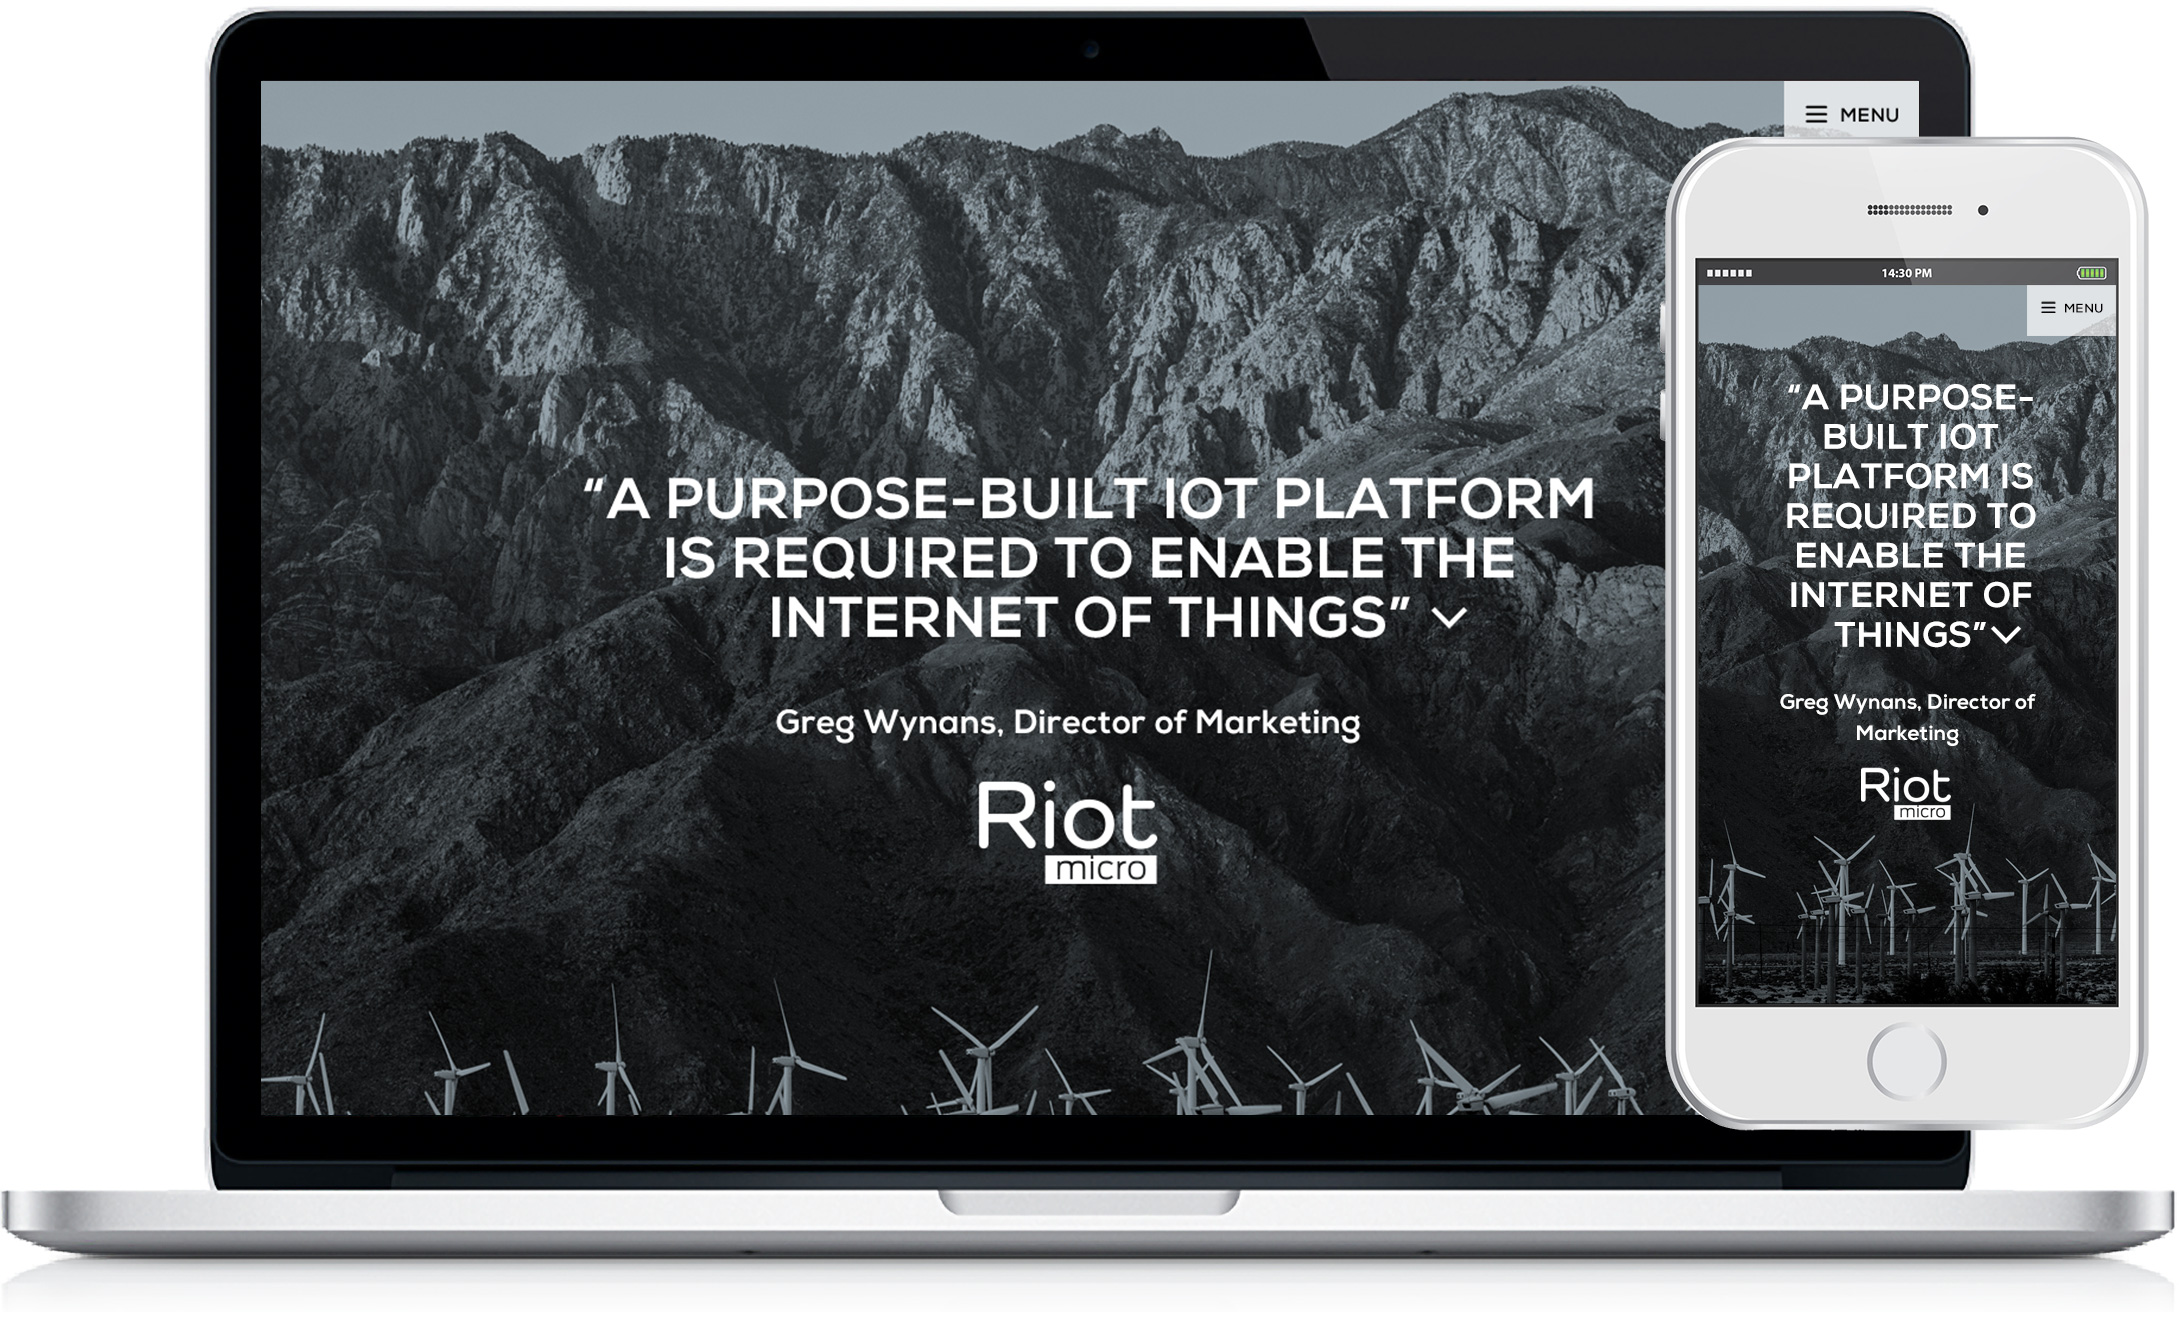 Website design for technology company Riot Micro